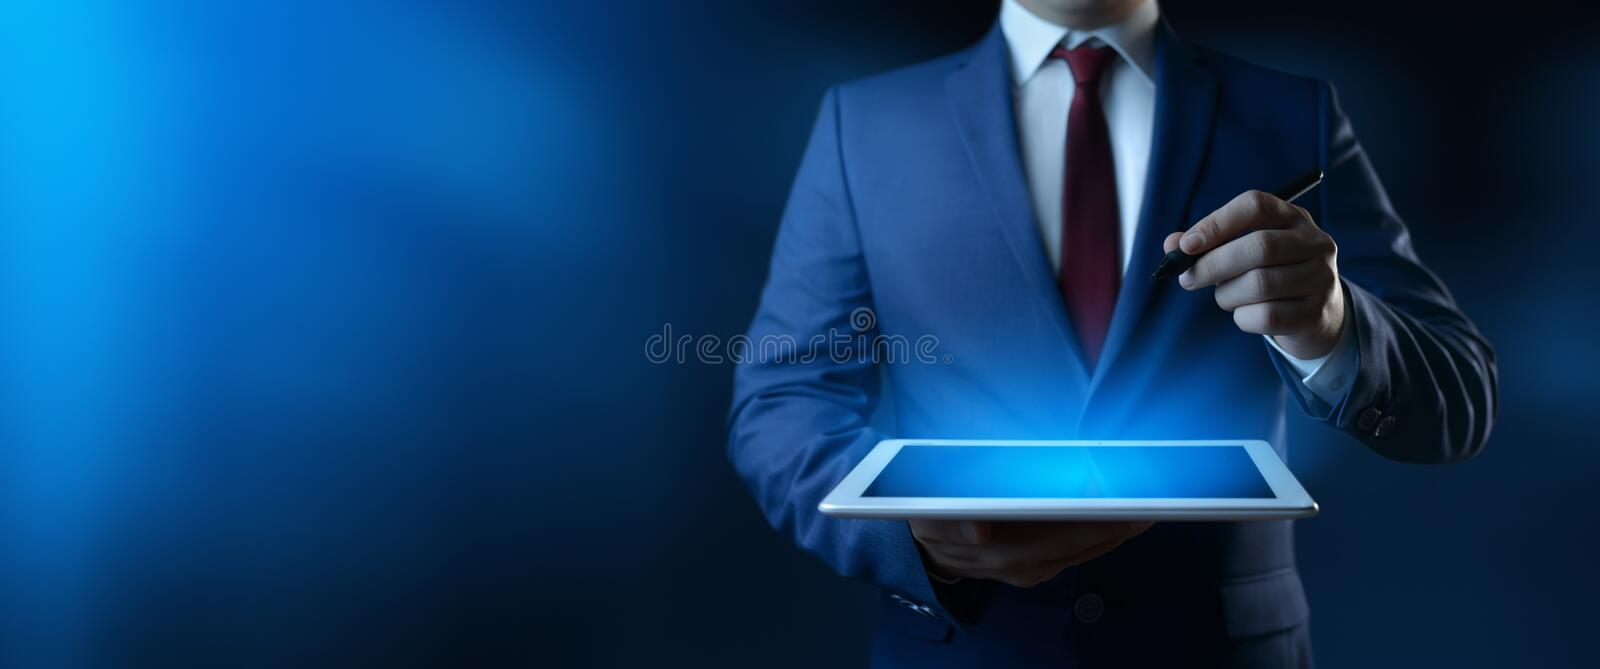 Businessman holding digital tablet. Man using gadget in office royalty free stock image